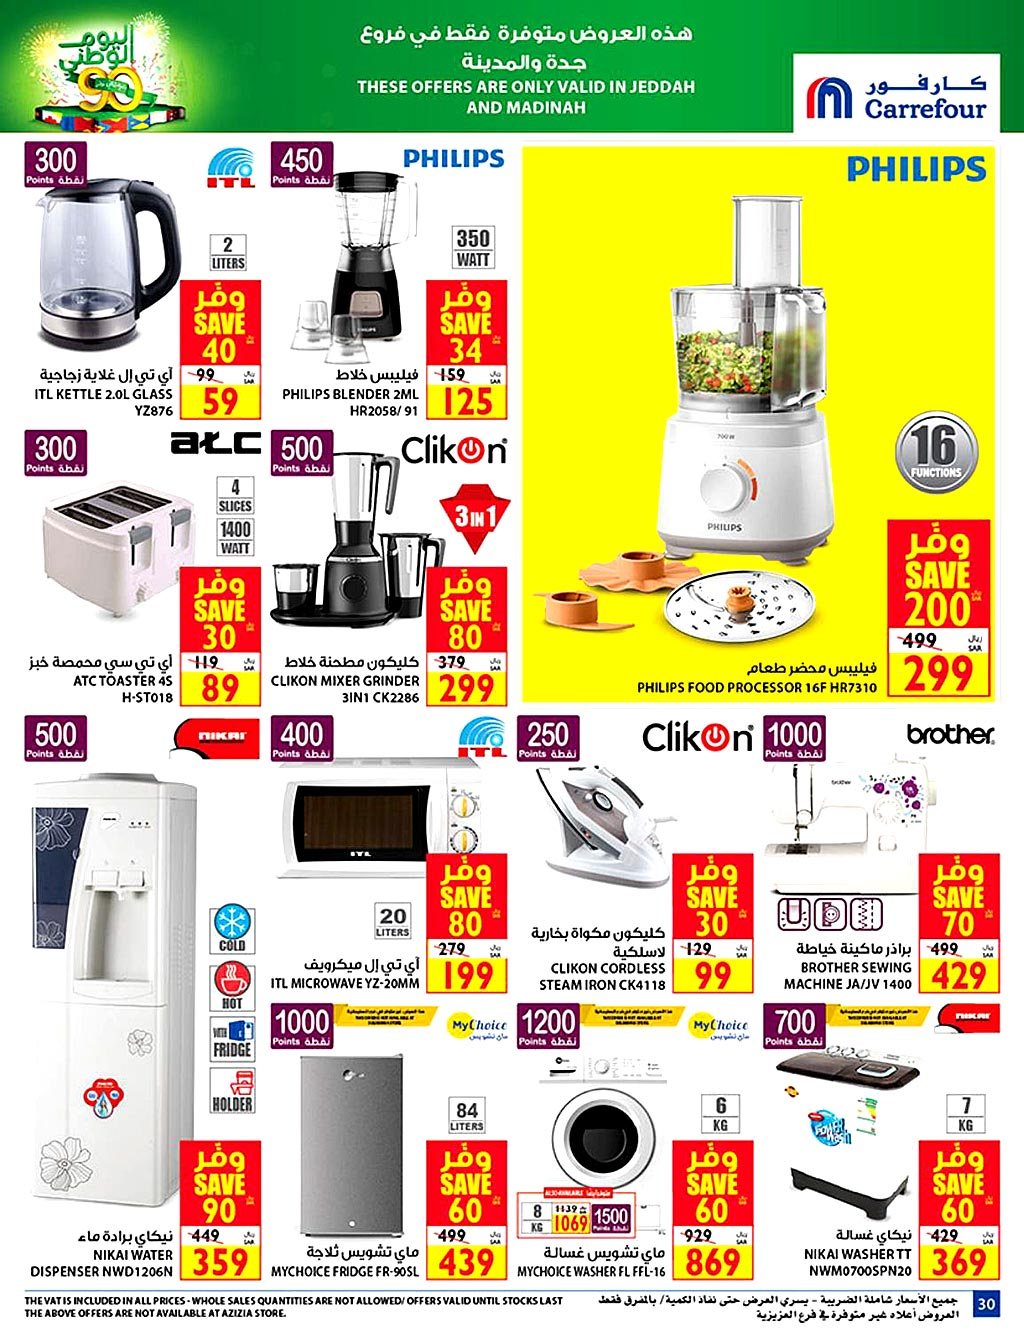 carrefour offers from 9sep to 22sep 2020 page number 29 عروض كارفور-السعودية من 9 سبتمبر حتى 22 سبتمبر 2020 صفحة رقم 29